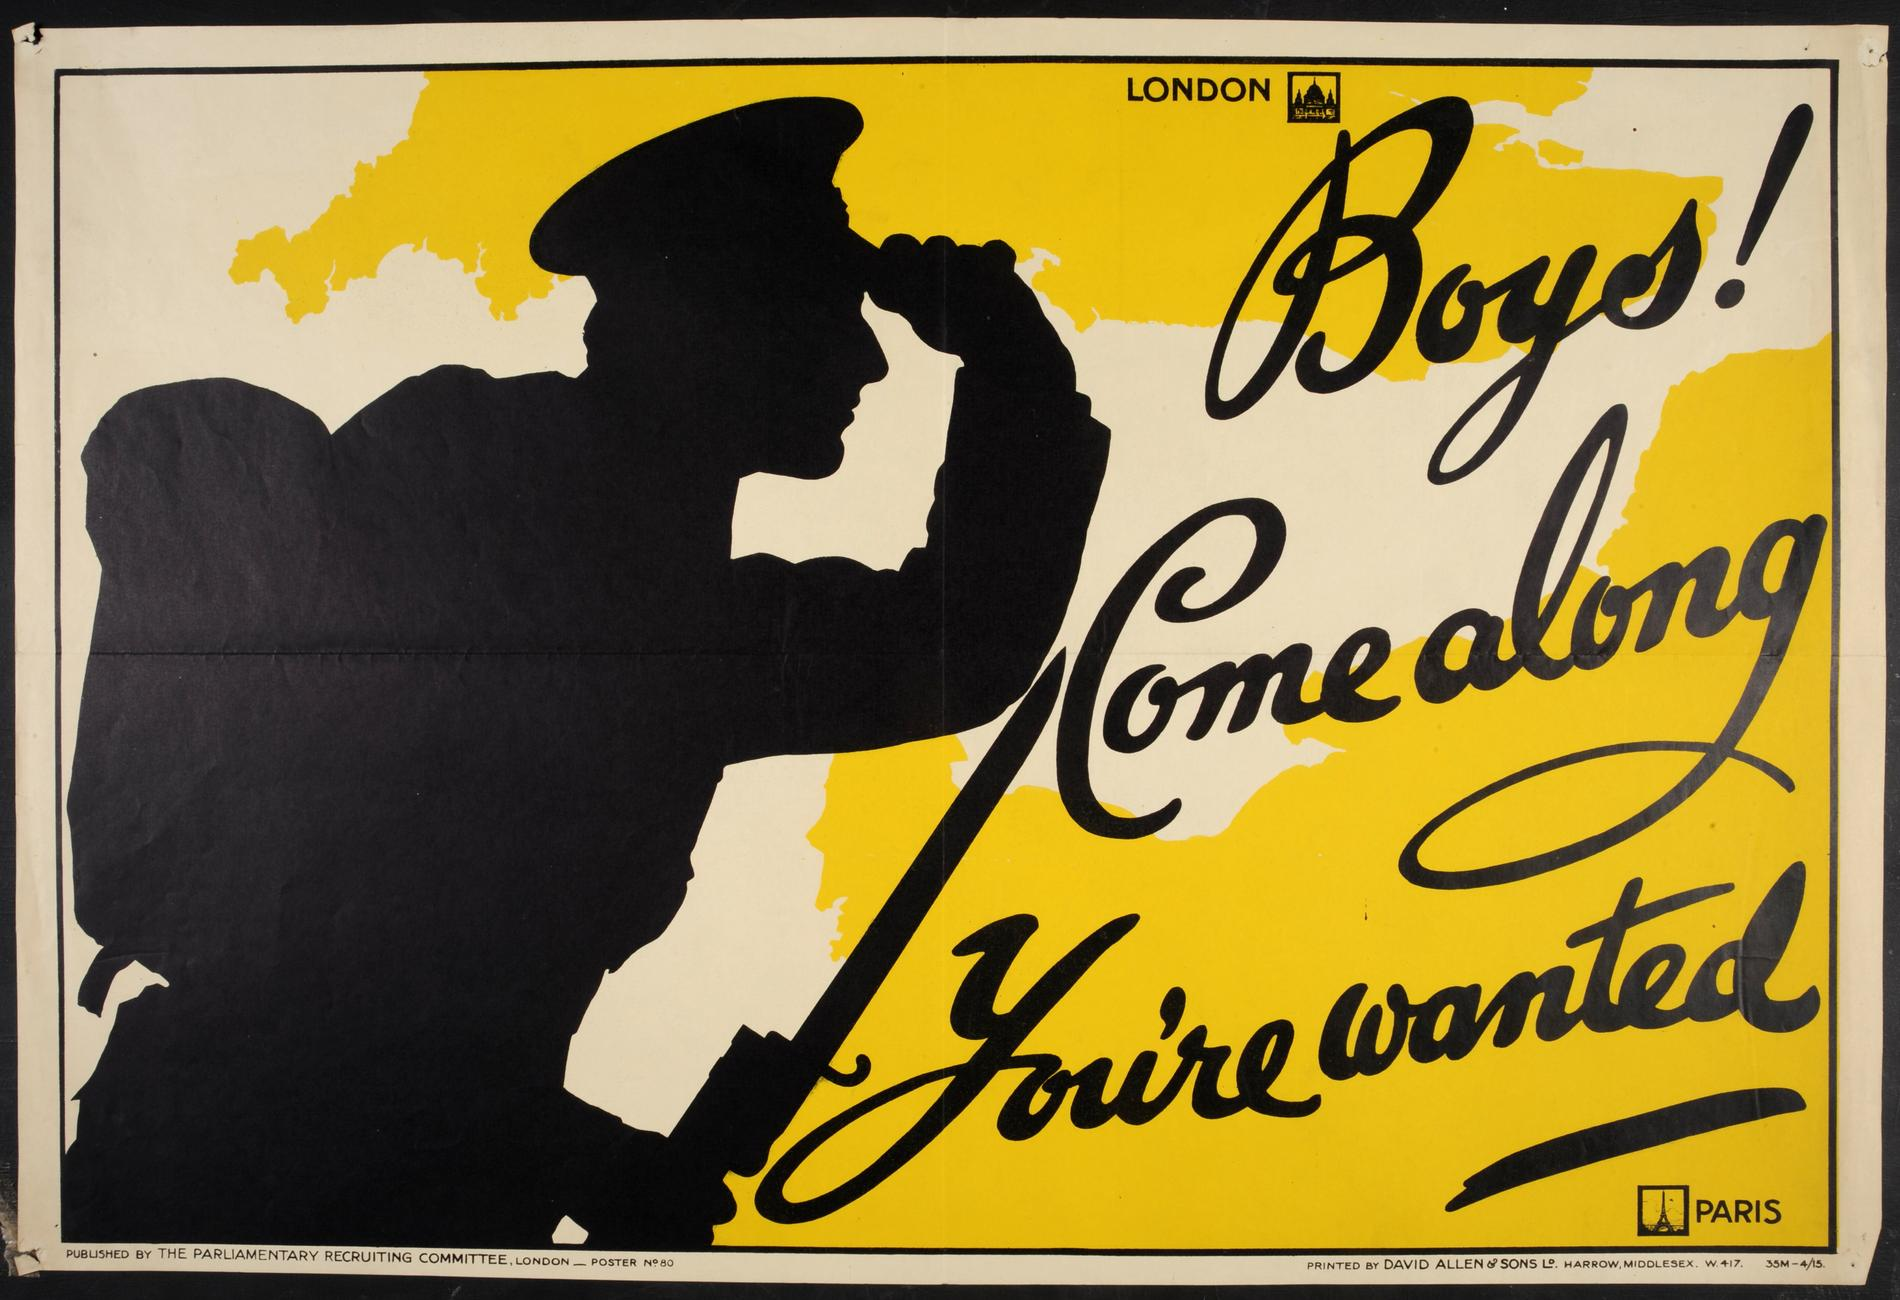 Boys! Come Along You're Wanted (Poster)